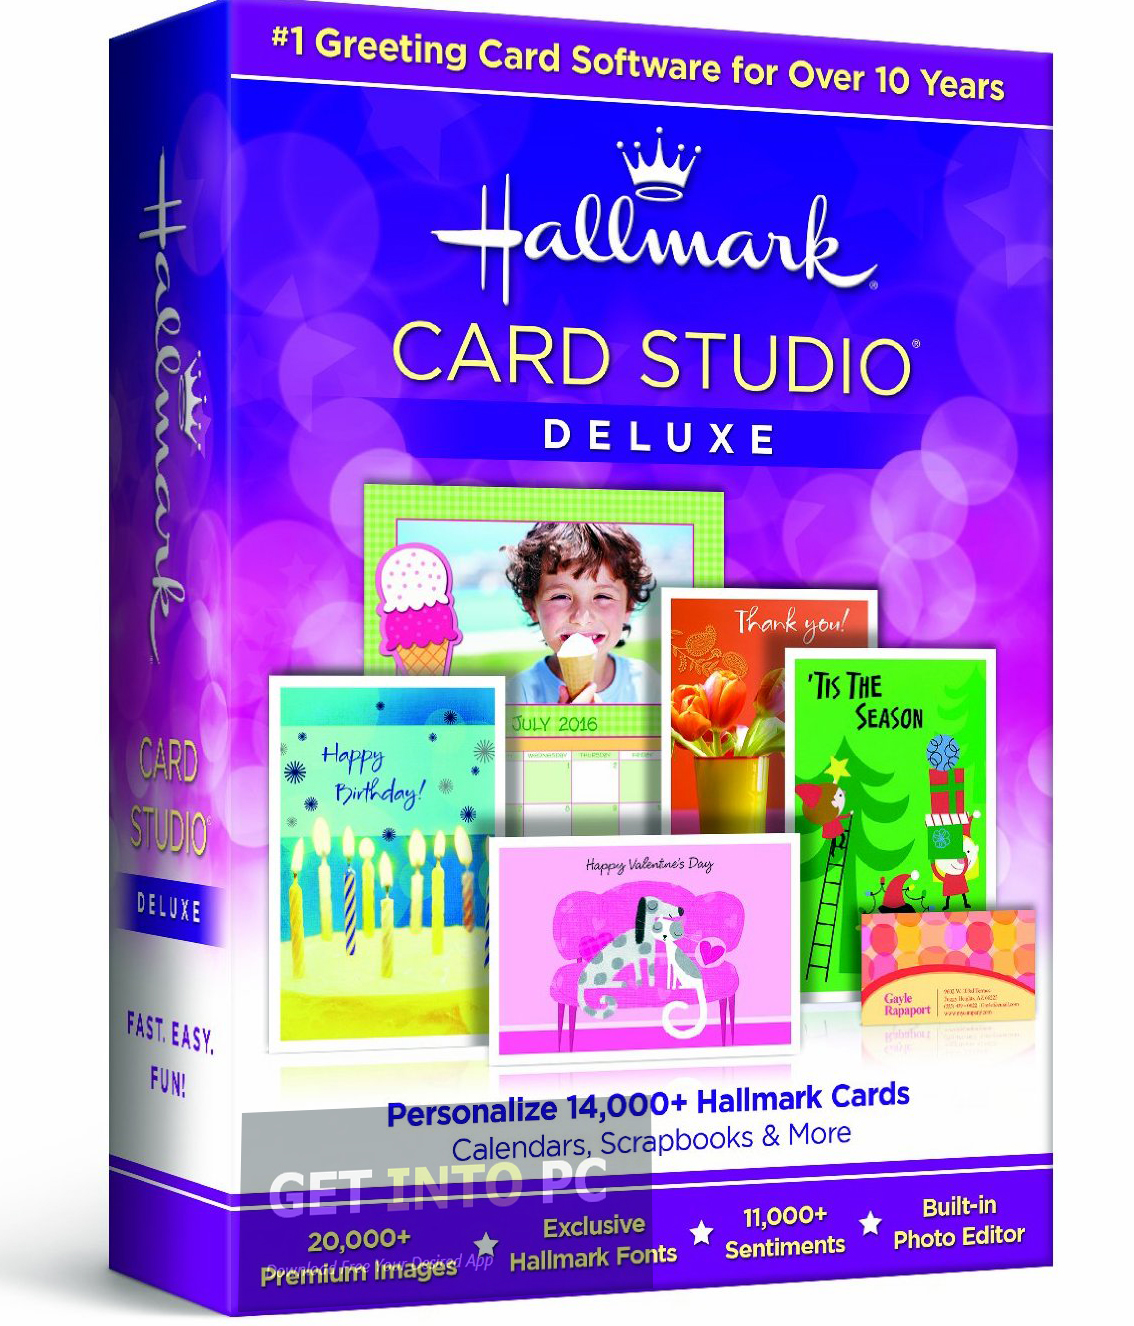 birthday card editor free download ; Hallmark-Card-Studio-Deluxe-2014-Free-Download